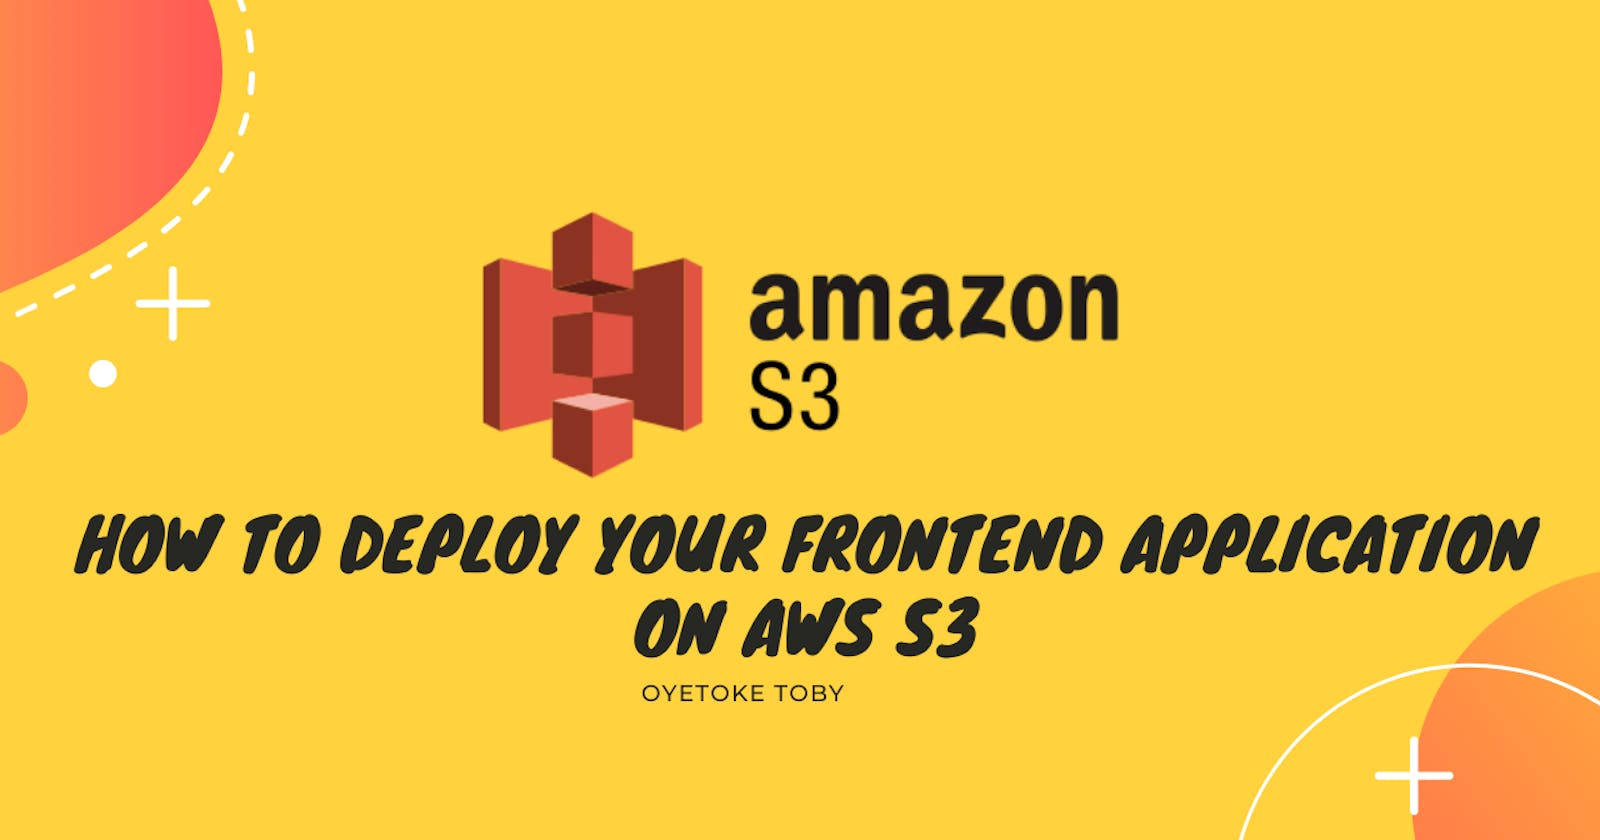 How to Deploy Your Frontend Application on AWS S3